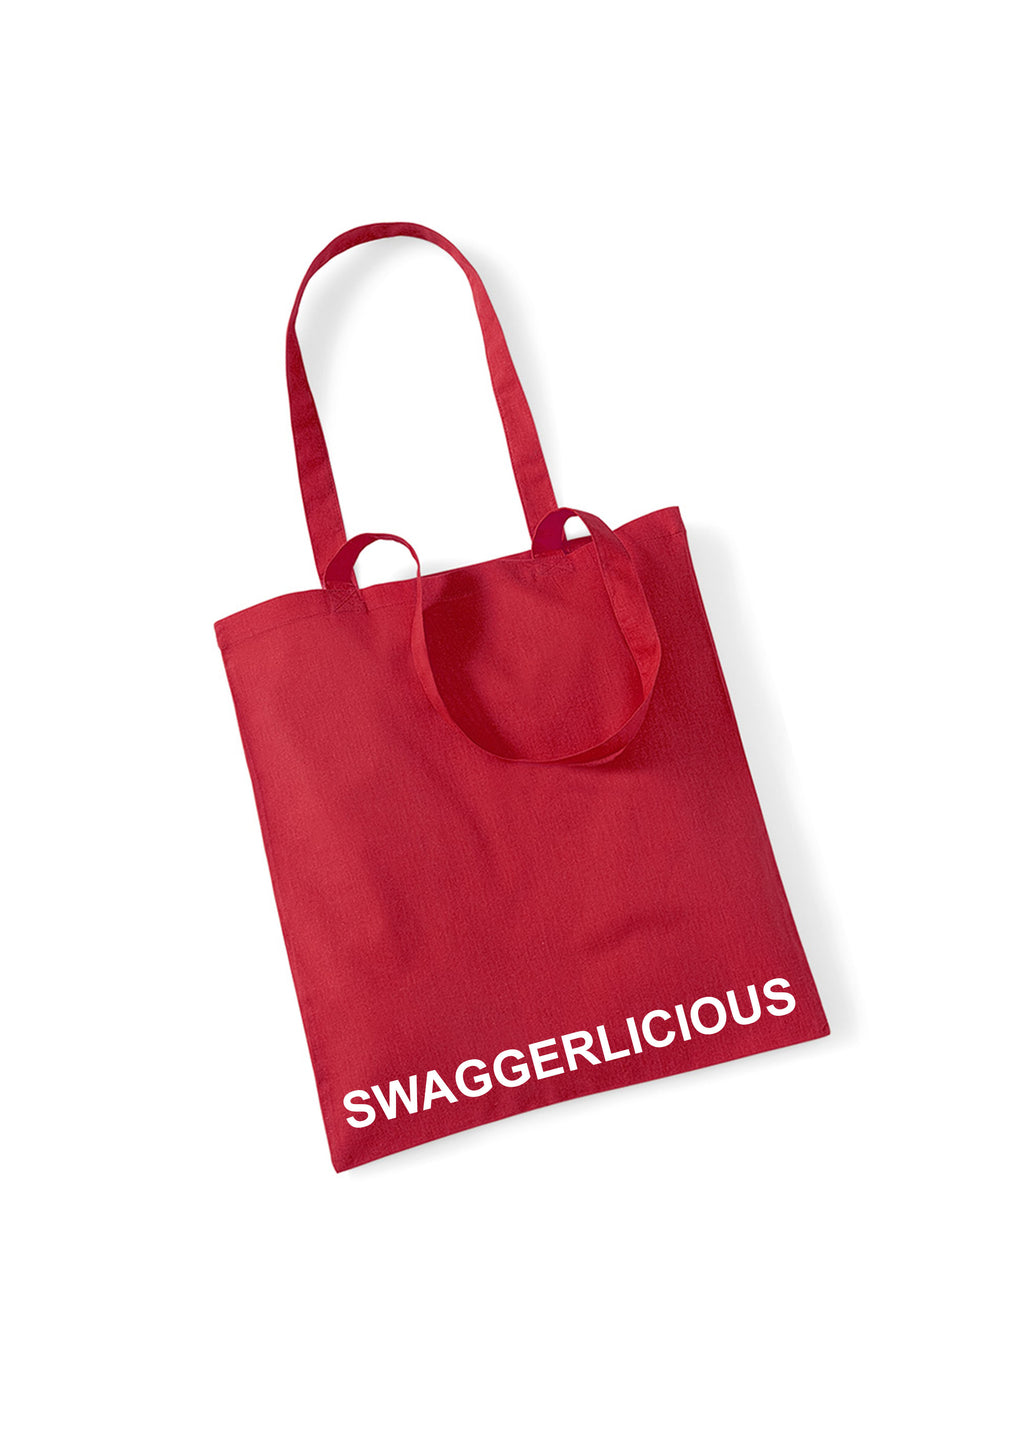 RED SWAGGERLICIOUS TOTE BAG - swaggerlicious-clothing.com